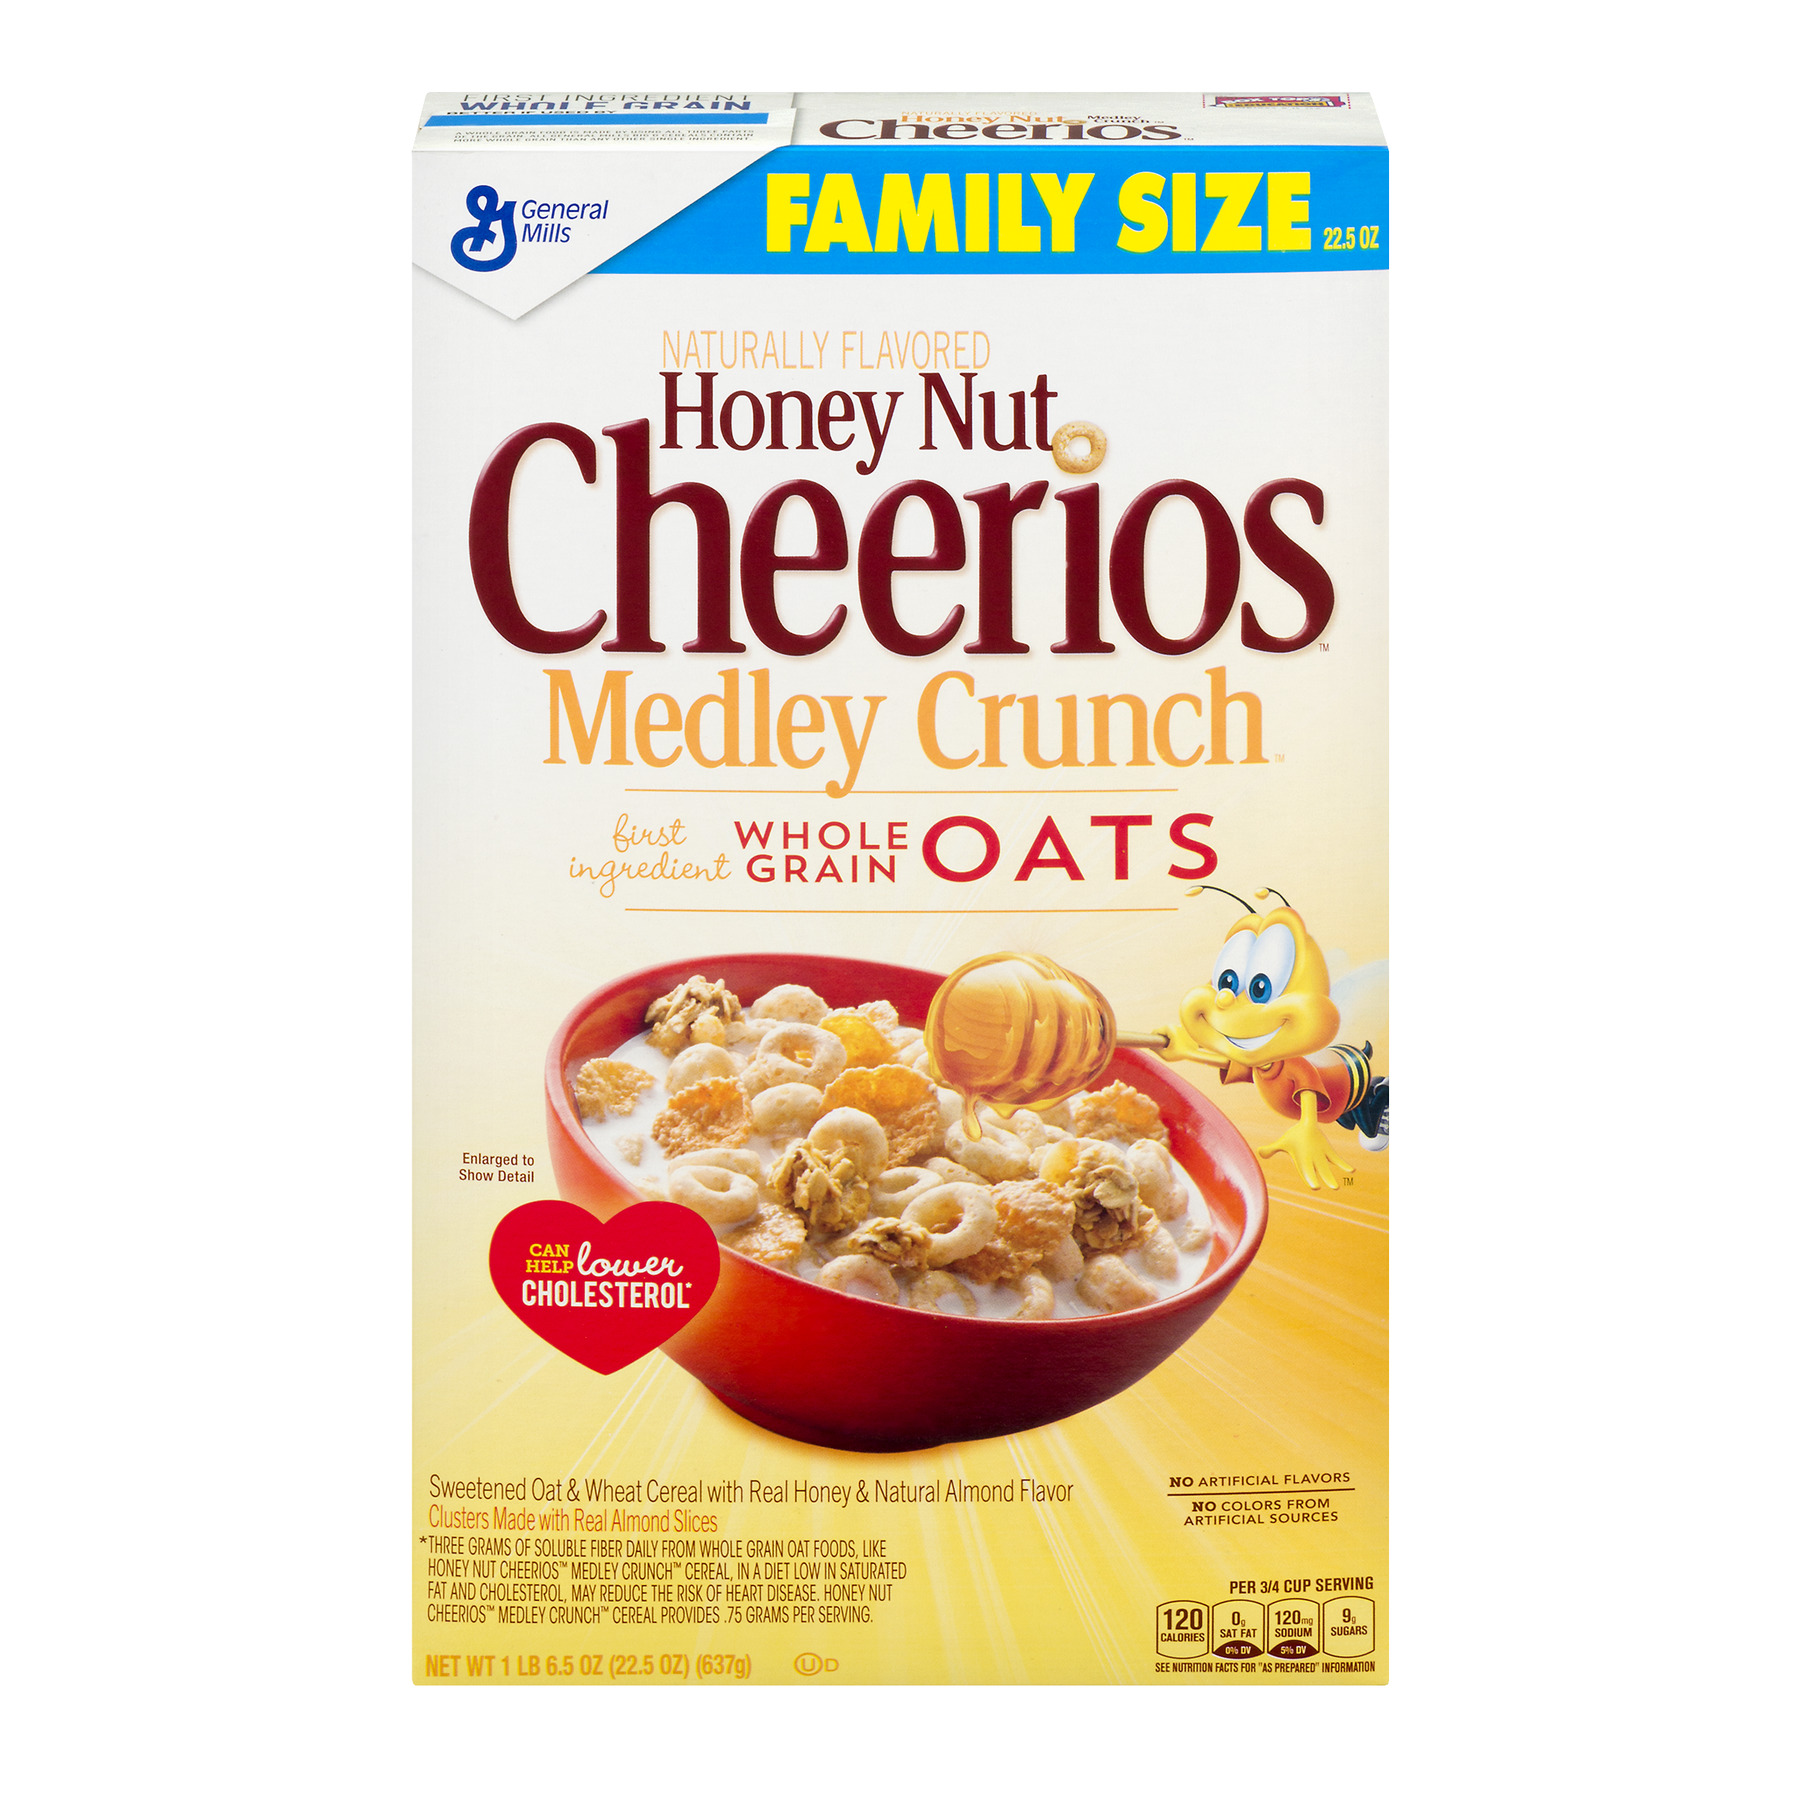 Honey Nut Cheerios Medley Crunch Cereal 22.5 oz. Box